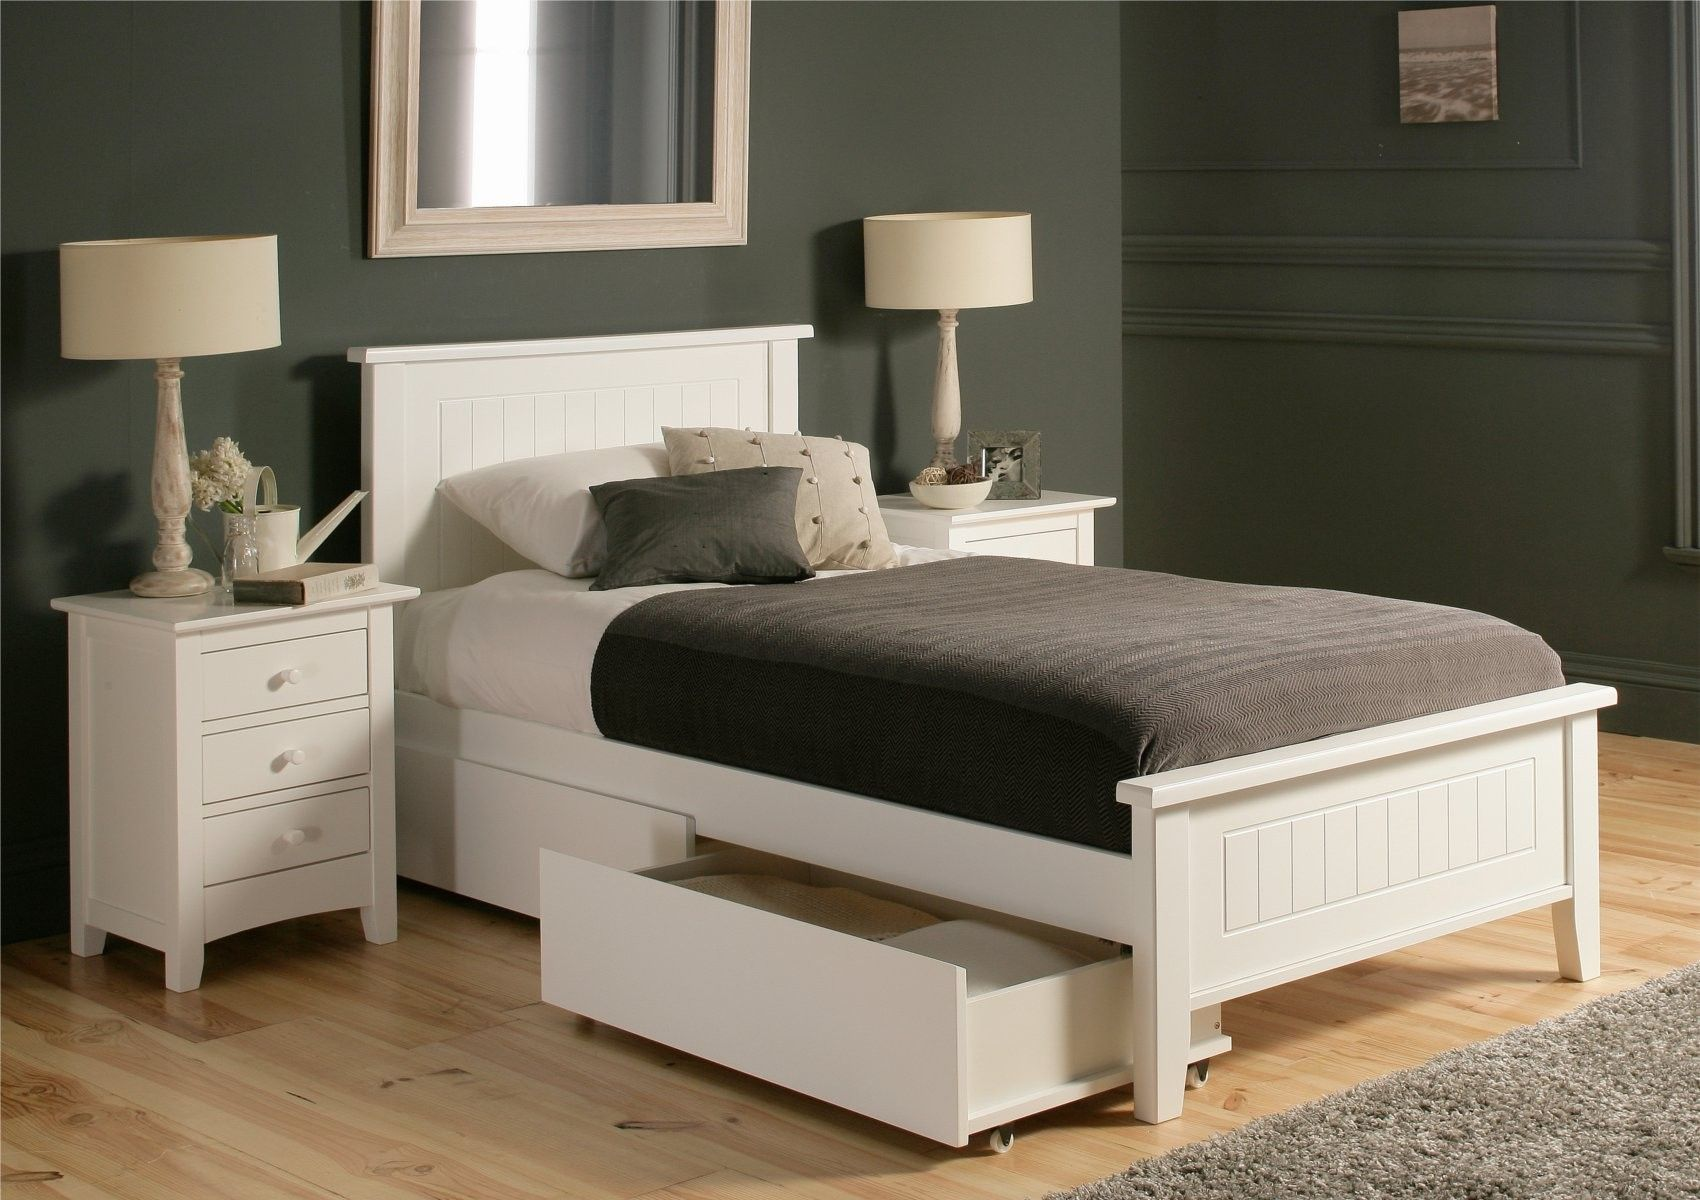 new england solo wooden bed frame standard wooden beds. Black Bedroom Furniture Sets. Home Design Ideas